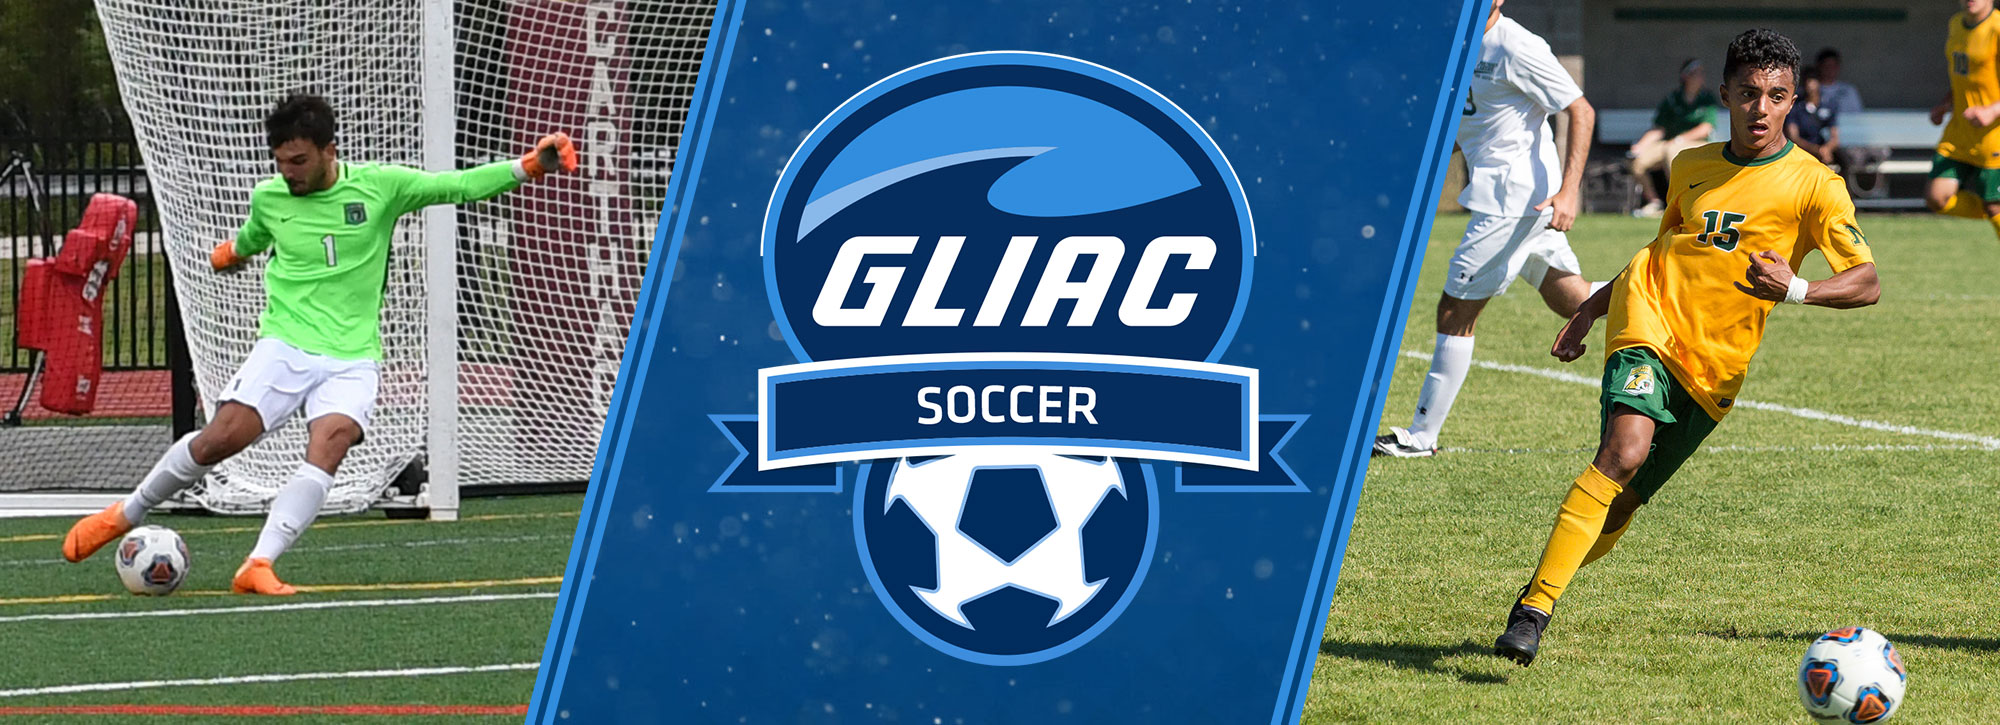 Northern Michigan's Olpin, Parkside's Gonzalez Land GLIAC Men's Soccer Weekly Honors